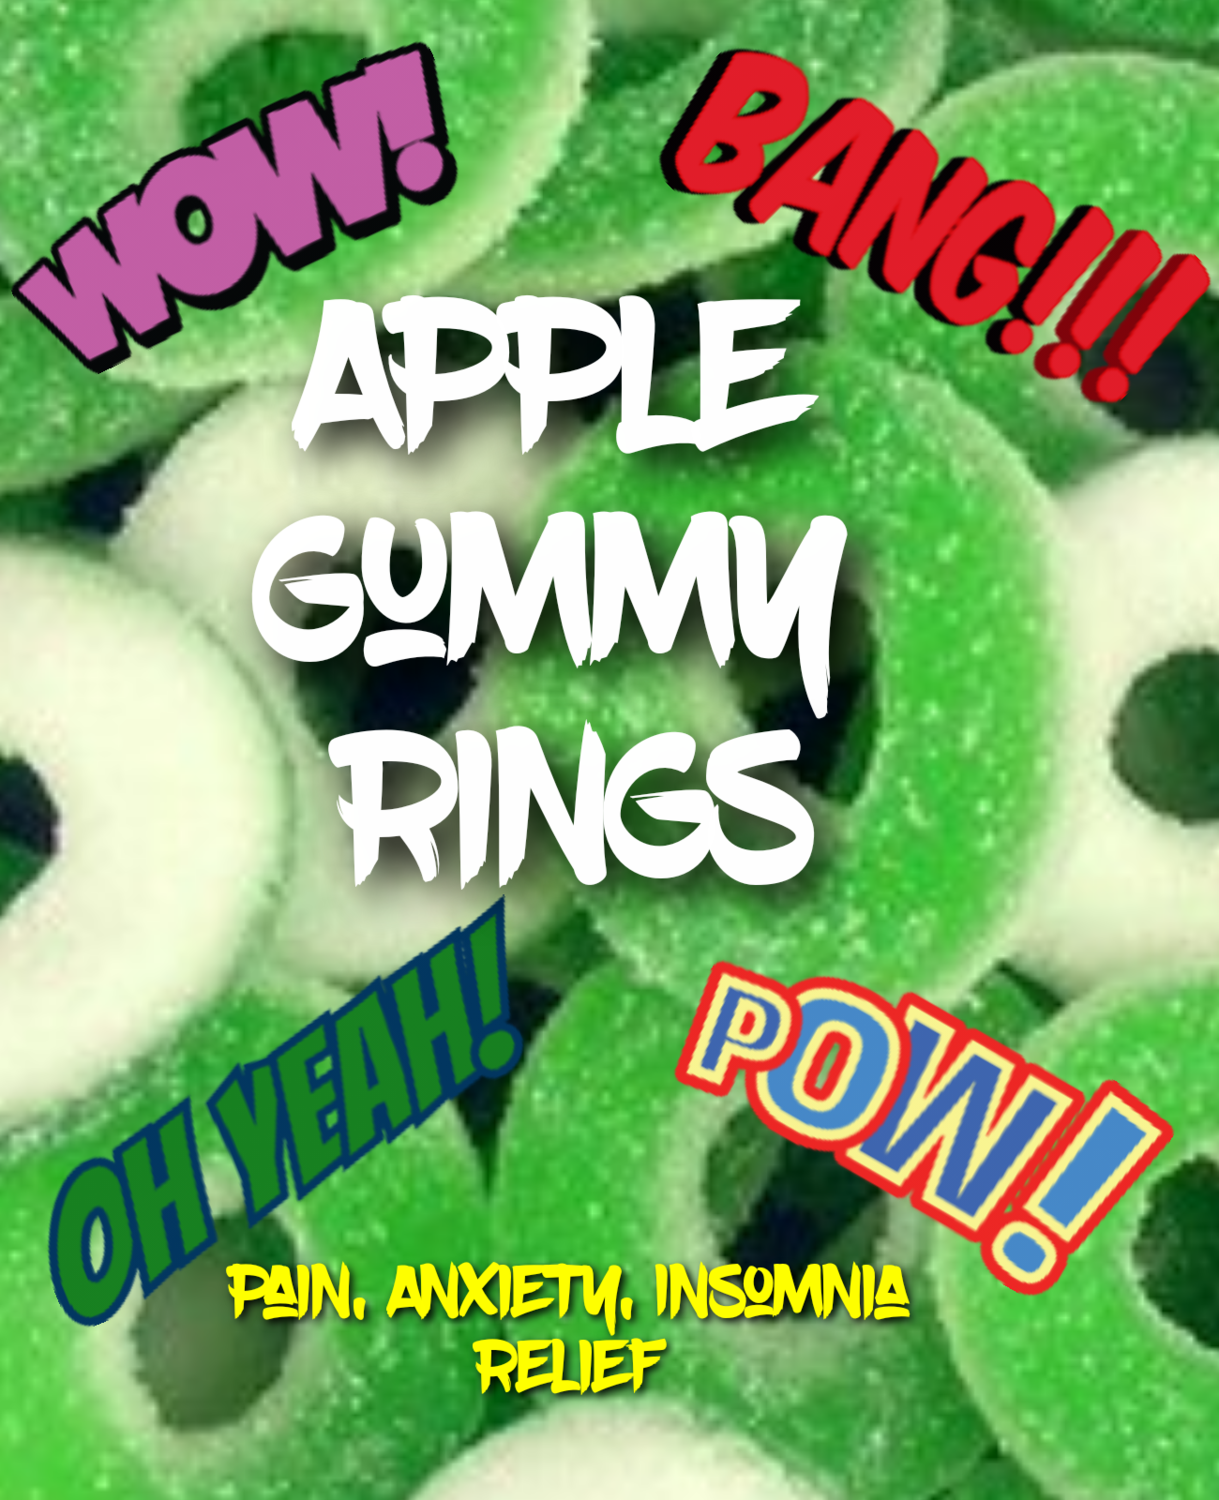 Eddie Bull's Medibles Gummy Apple Rings for Pain and Anxiety (2)